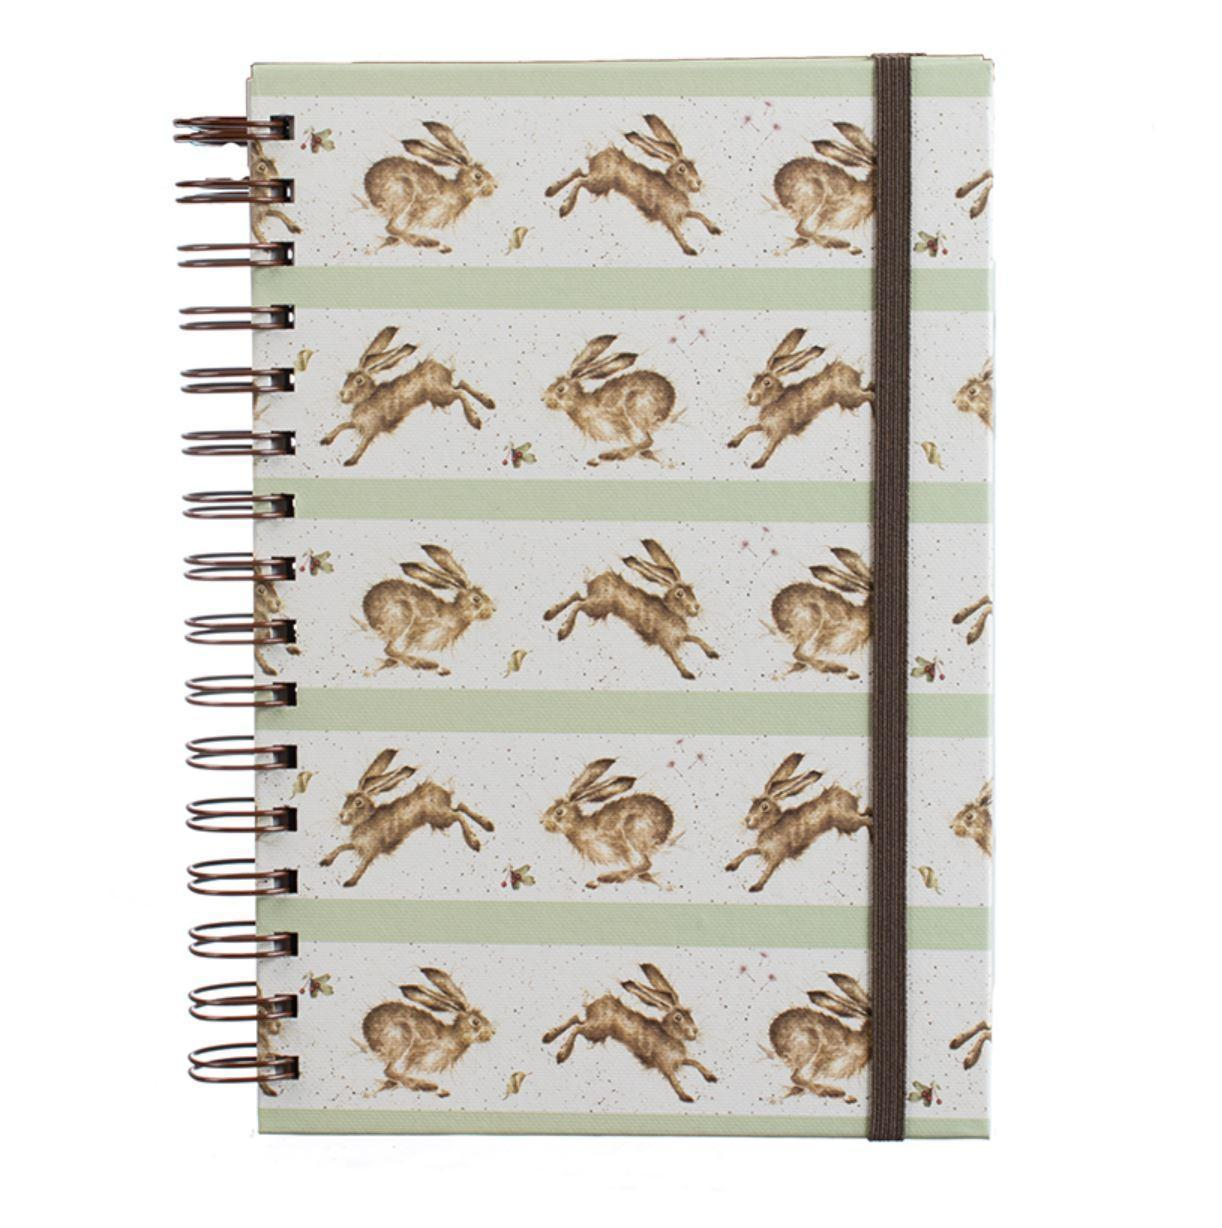 Wrendale 'Leaping Hare' Rabbit Spiral Bound Journal